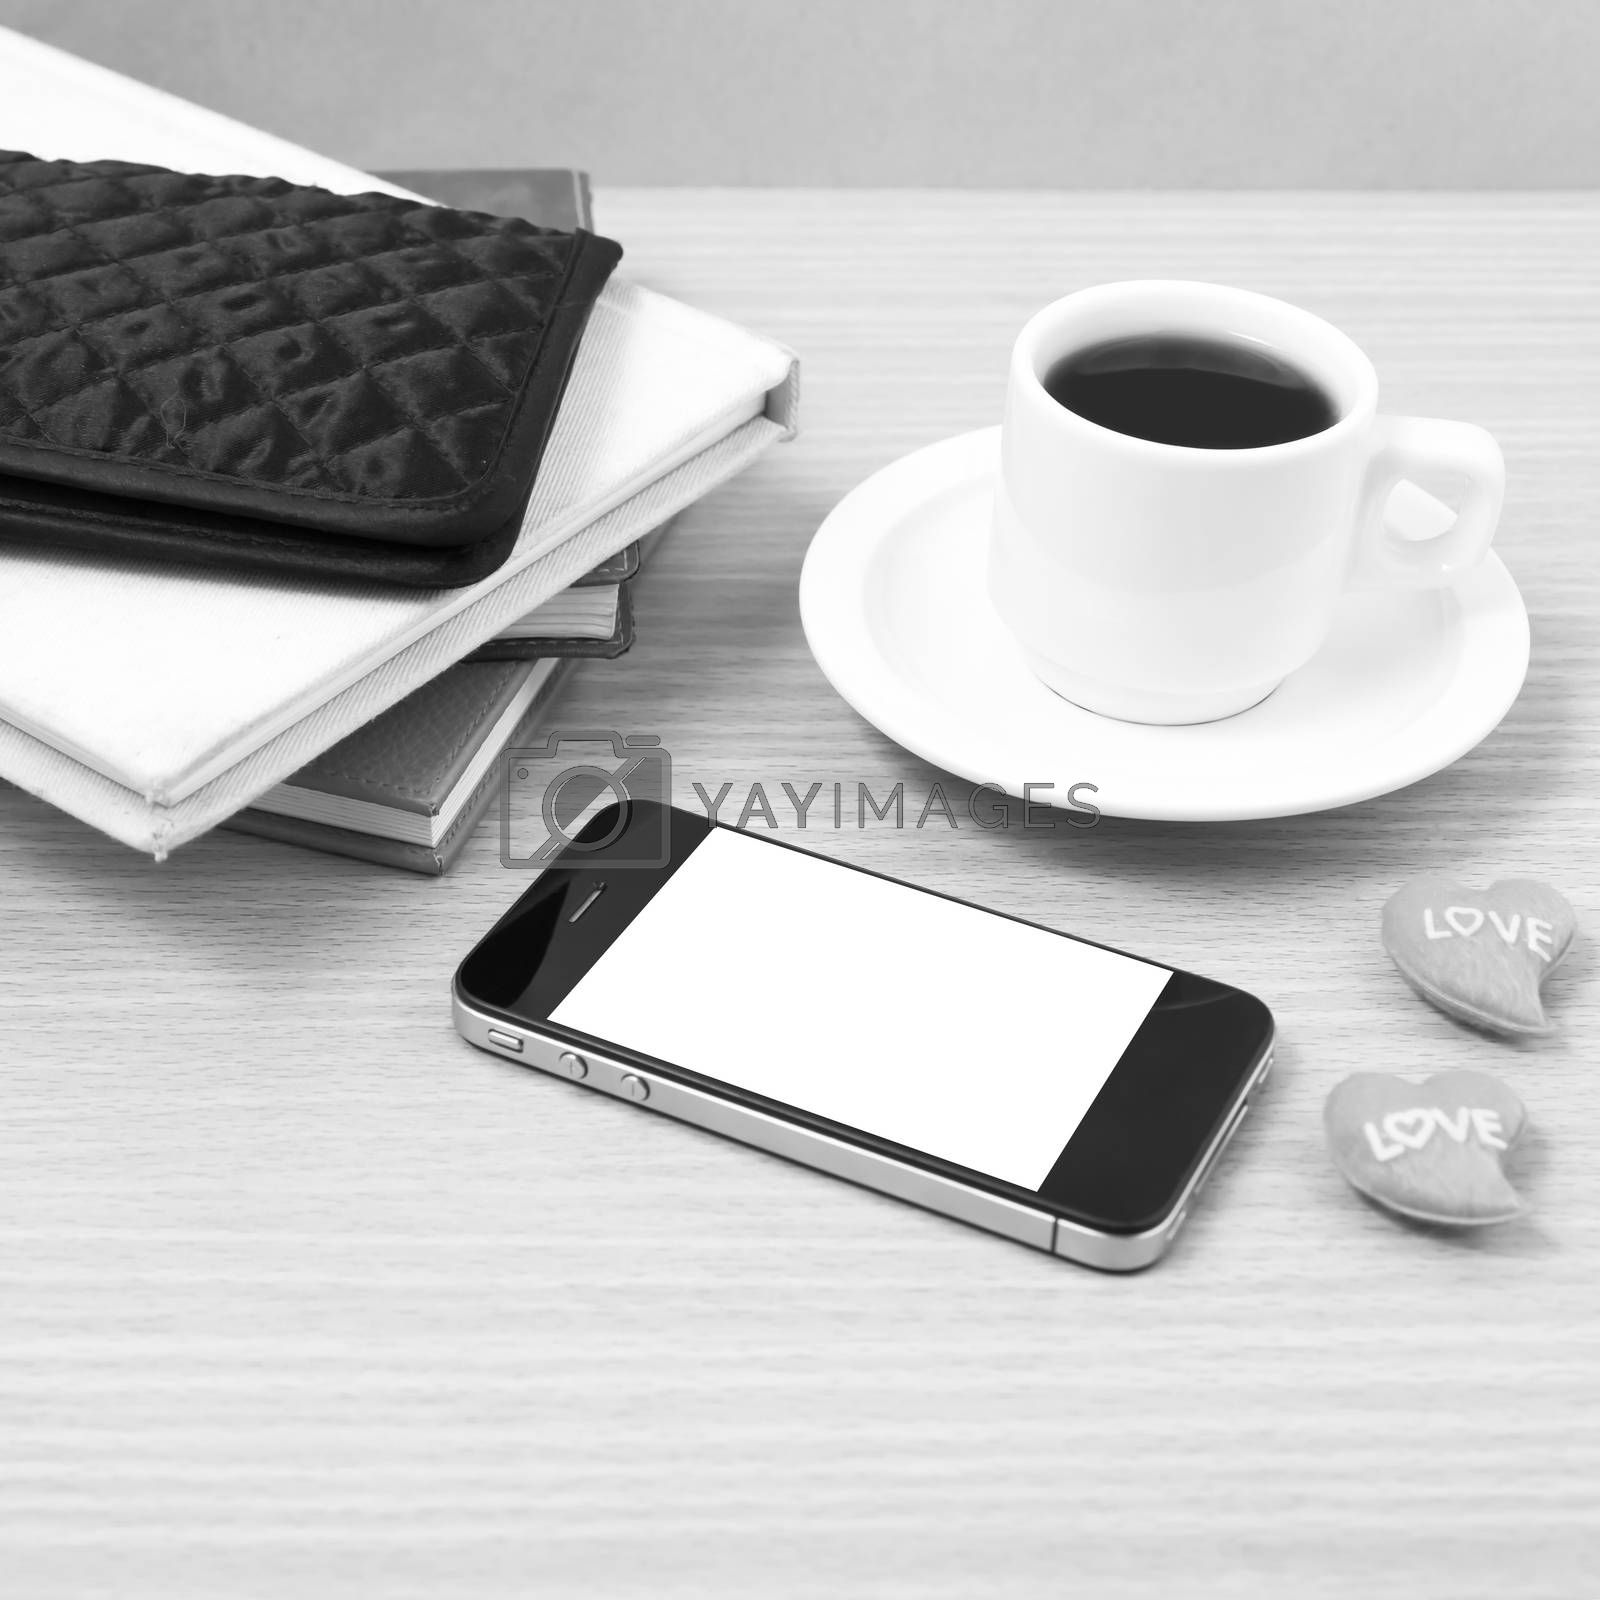 office desk : coffee with phone,heart,stack of book,wallet on wood background black and white color